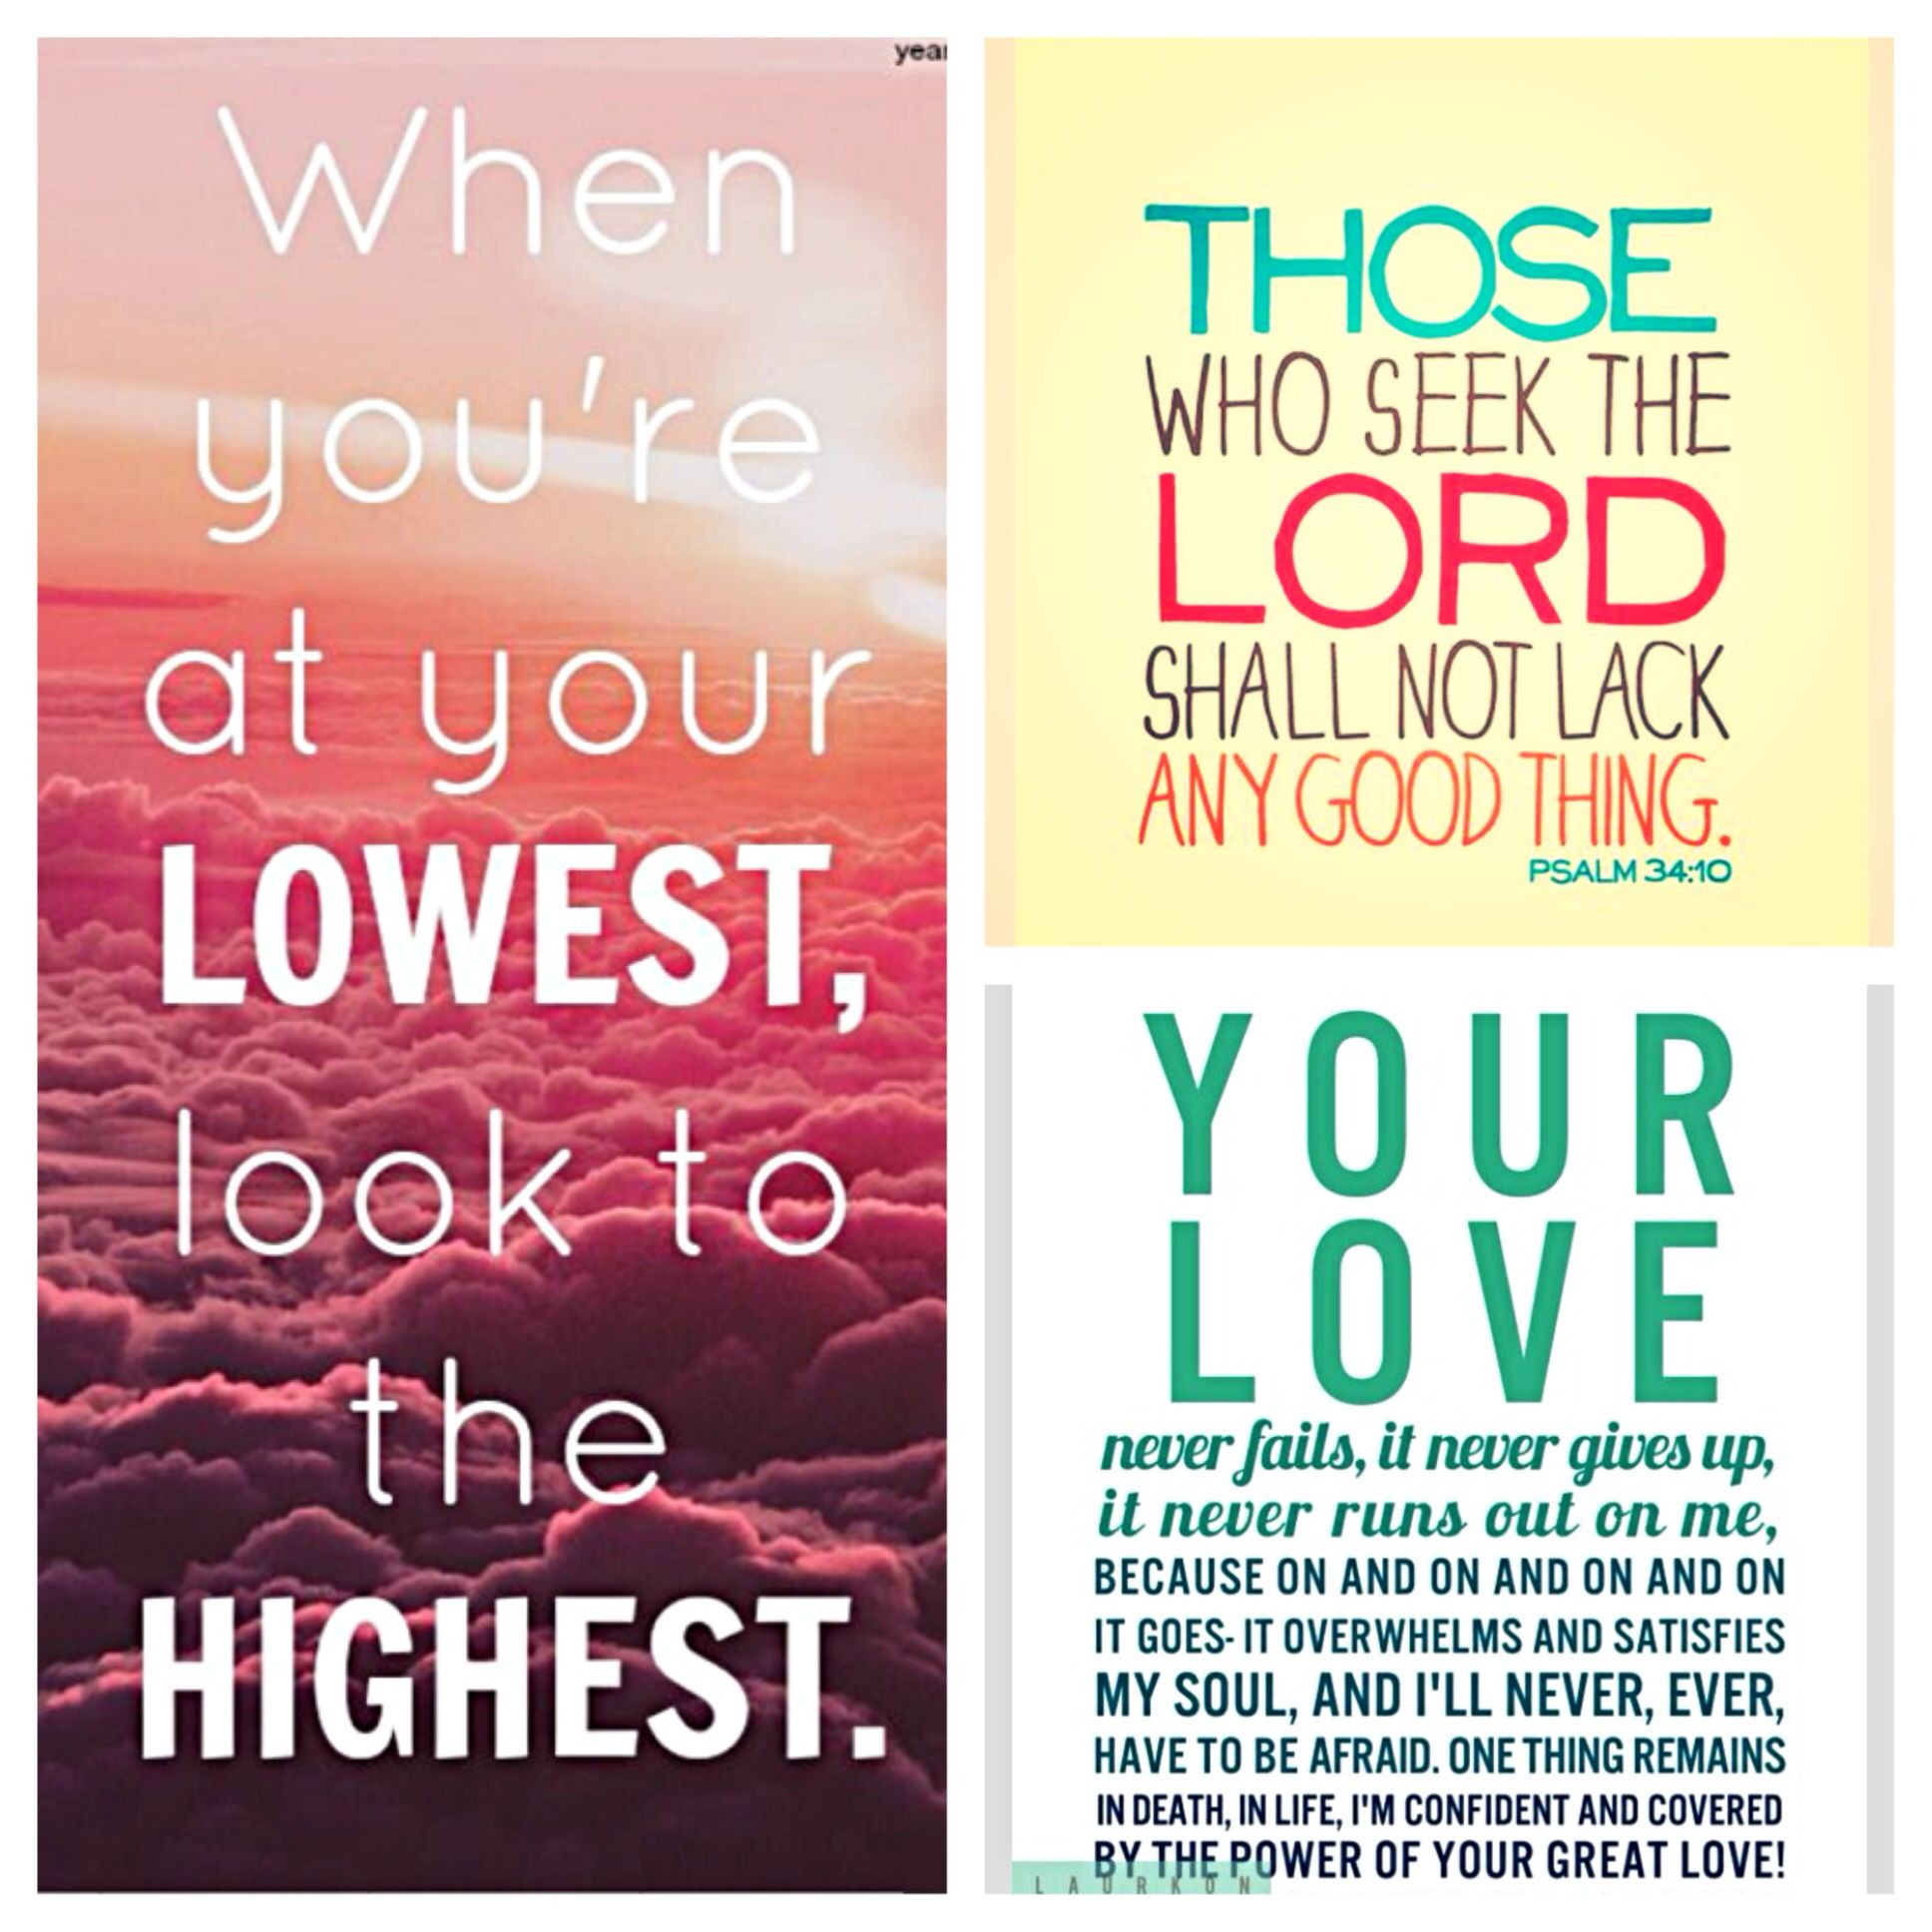 Christian girls words of wisdom!   I love the lord